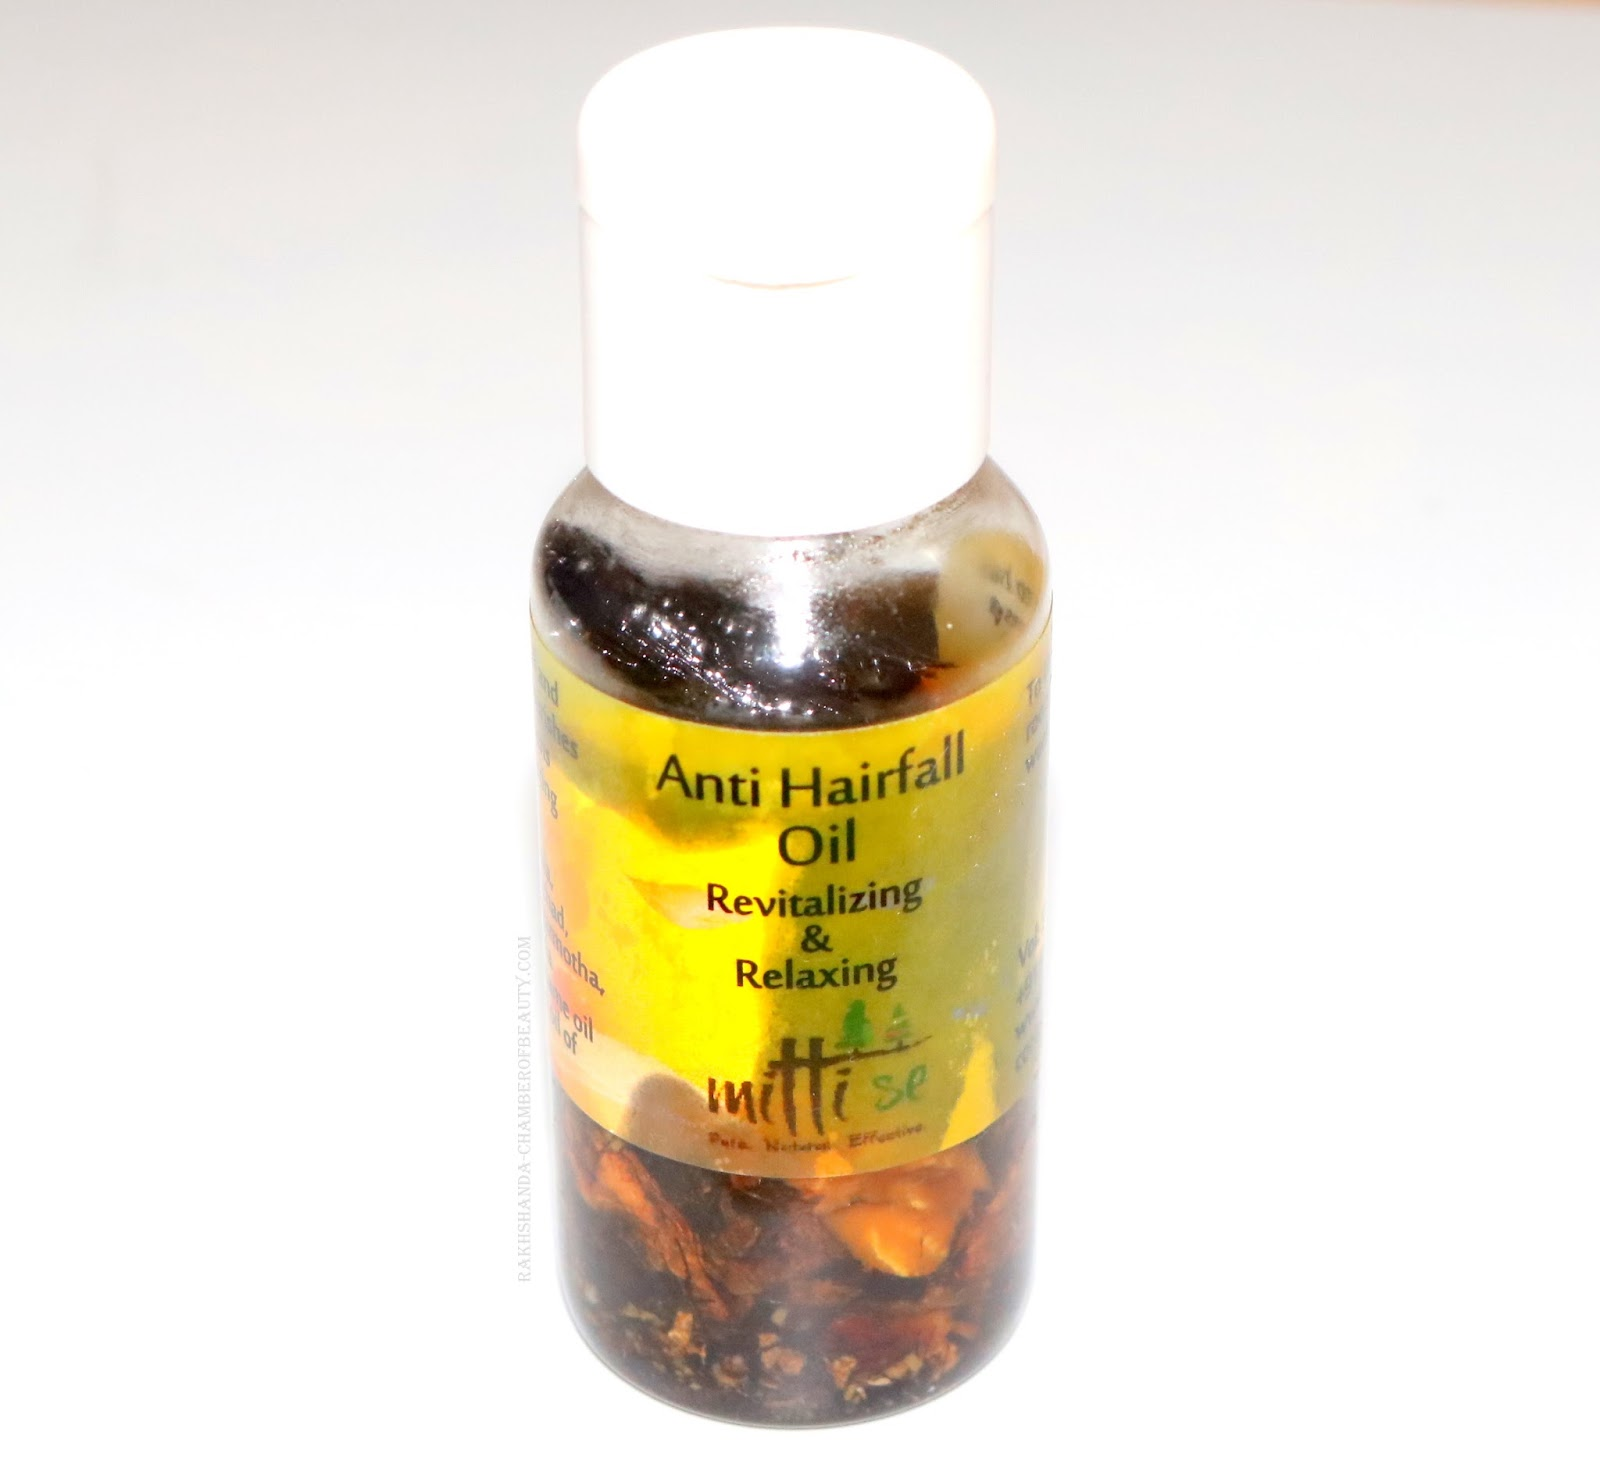 www.rakhshanda-chamberofbeauty.com/Mitti Se Anti Hair fall oil review and price/Indian beauty blogger